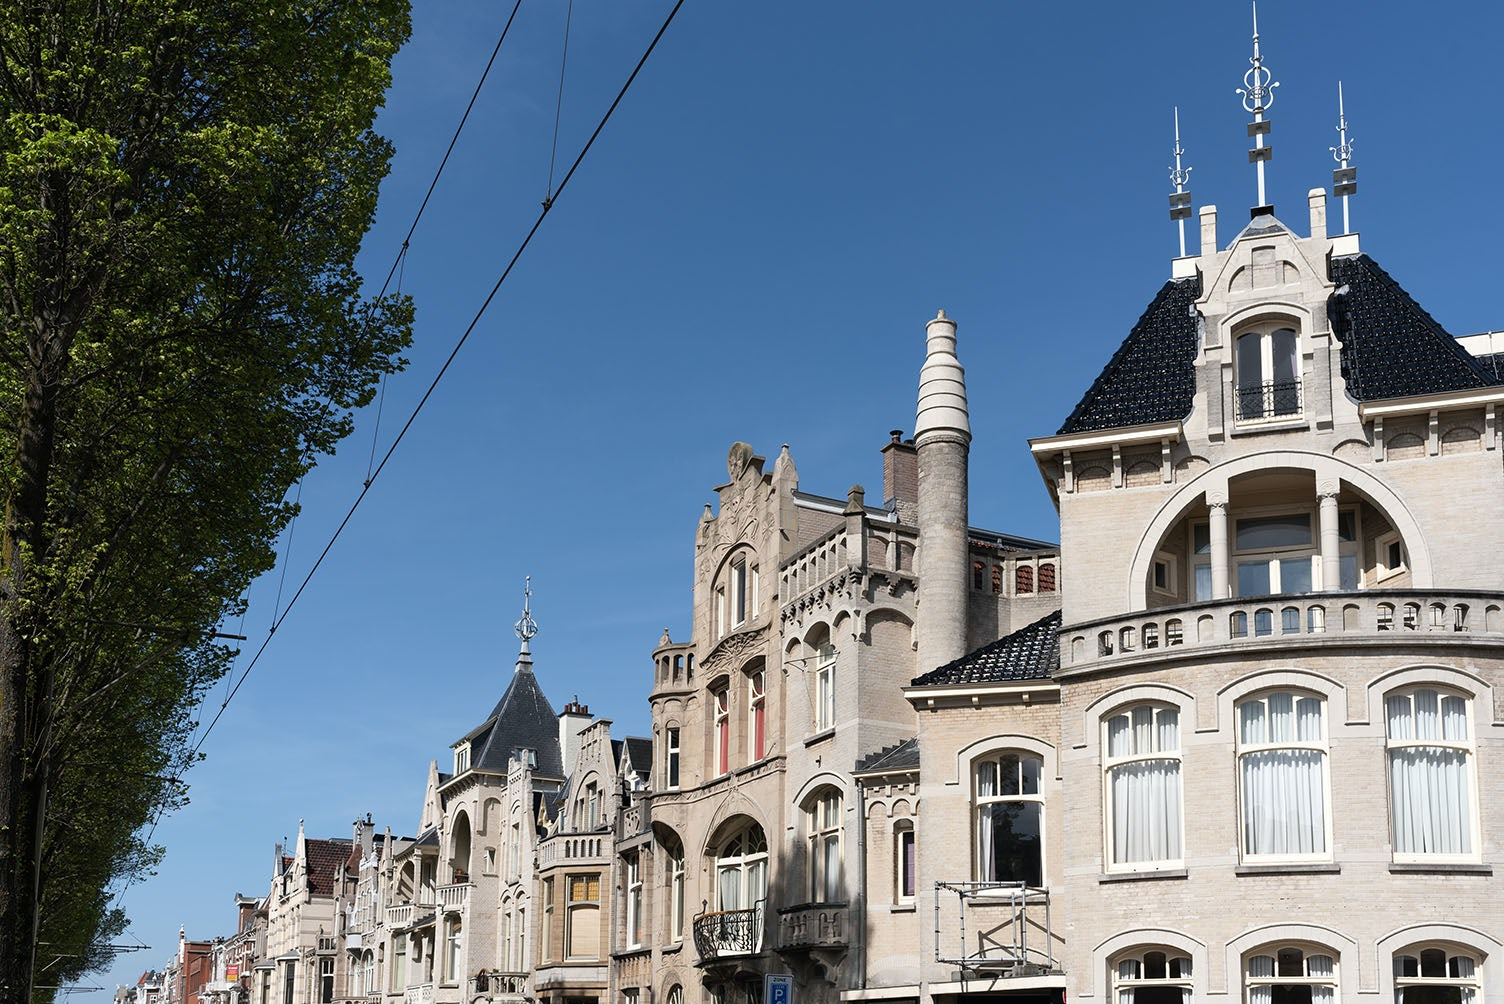 roofs of art nouveau houses in the Laan van Meerdervoort The Hague